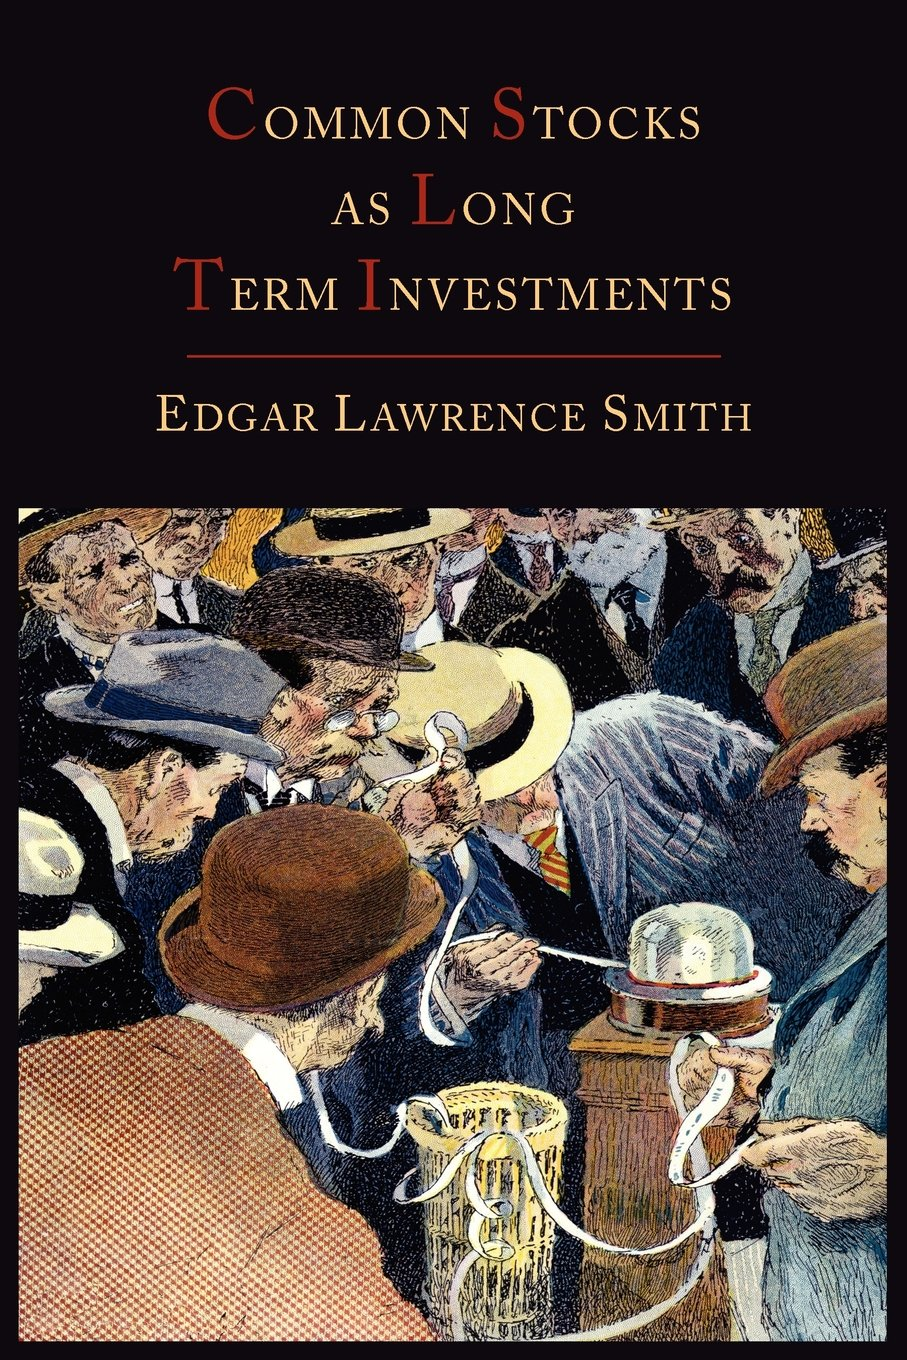 Common Stocks as Long Term Investments: Edgar Lawrence Smith